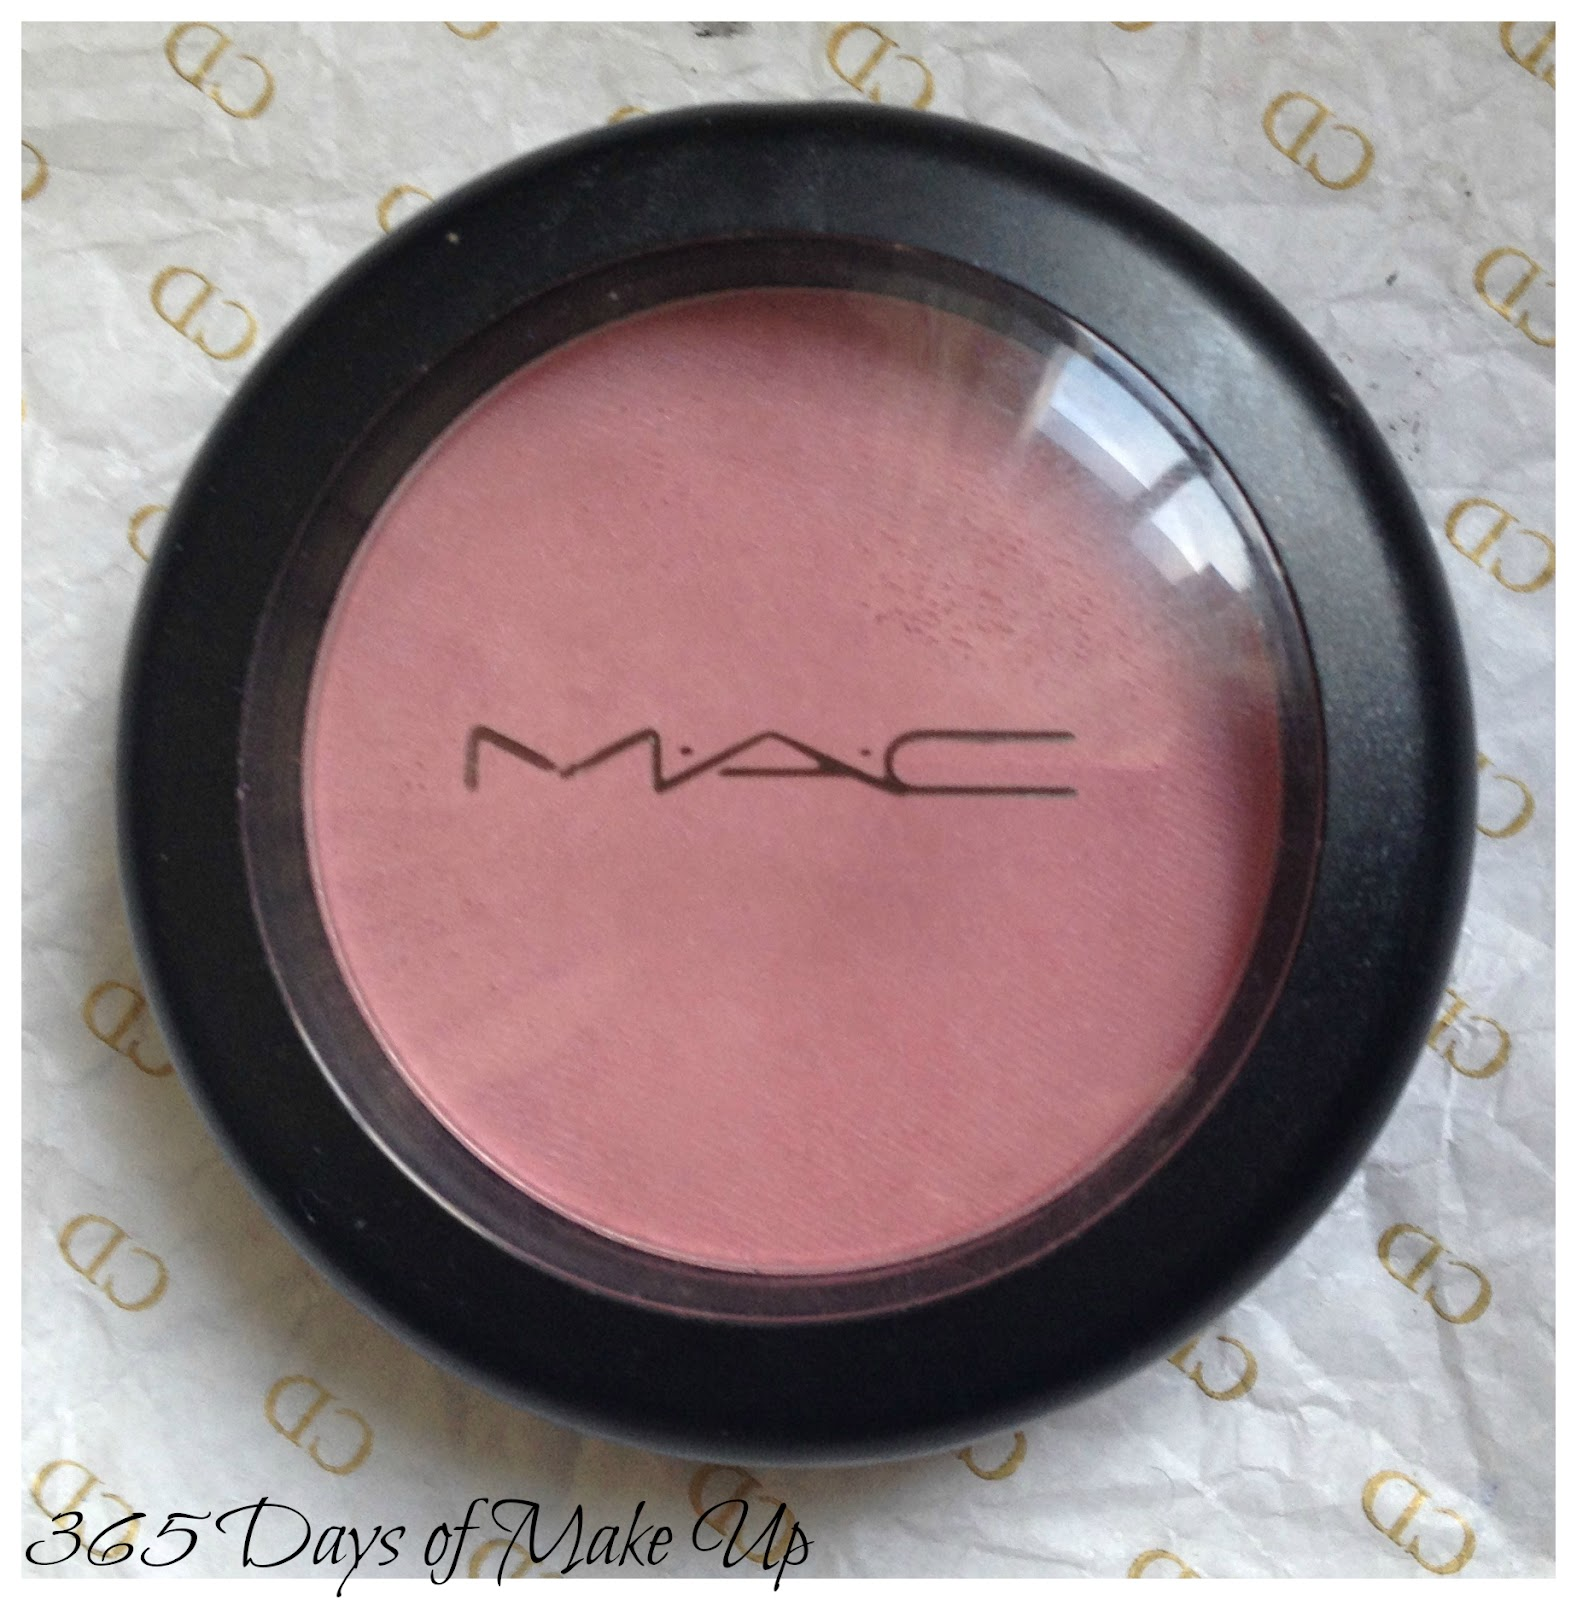 a2271311 So, I just own two Mac blushes and I already reviewed one. Today I am  reviewing the other Mac blush I own, which is called Dame.